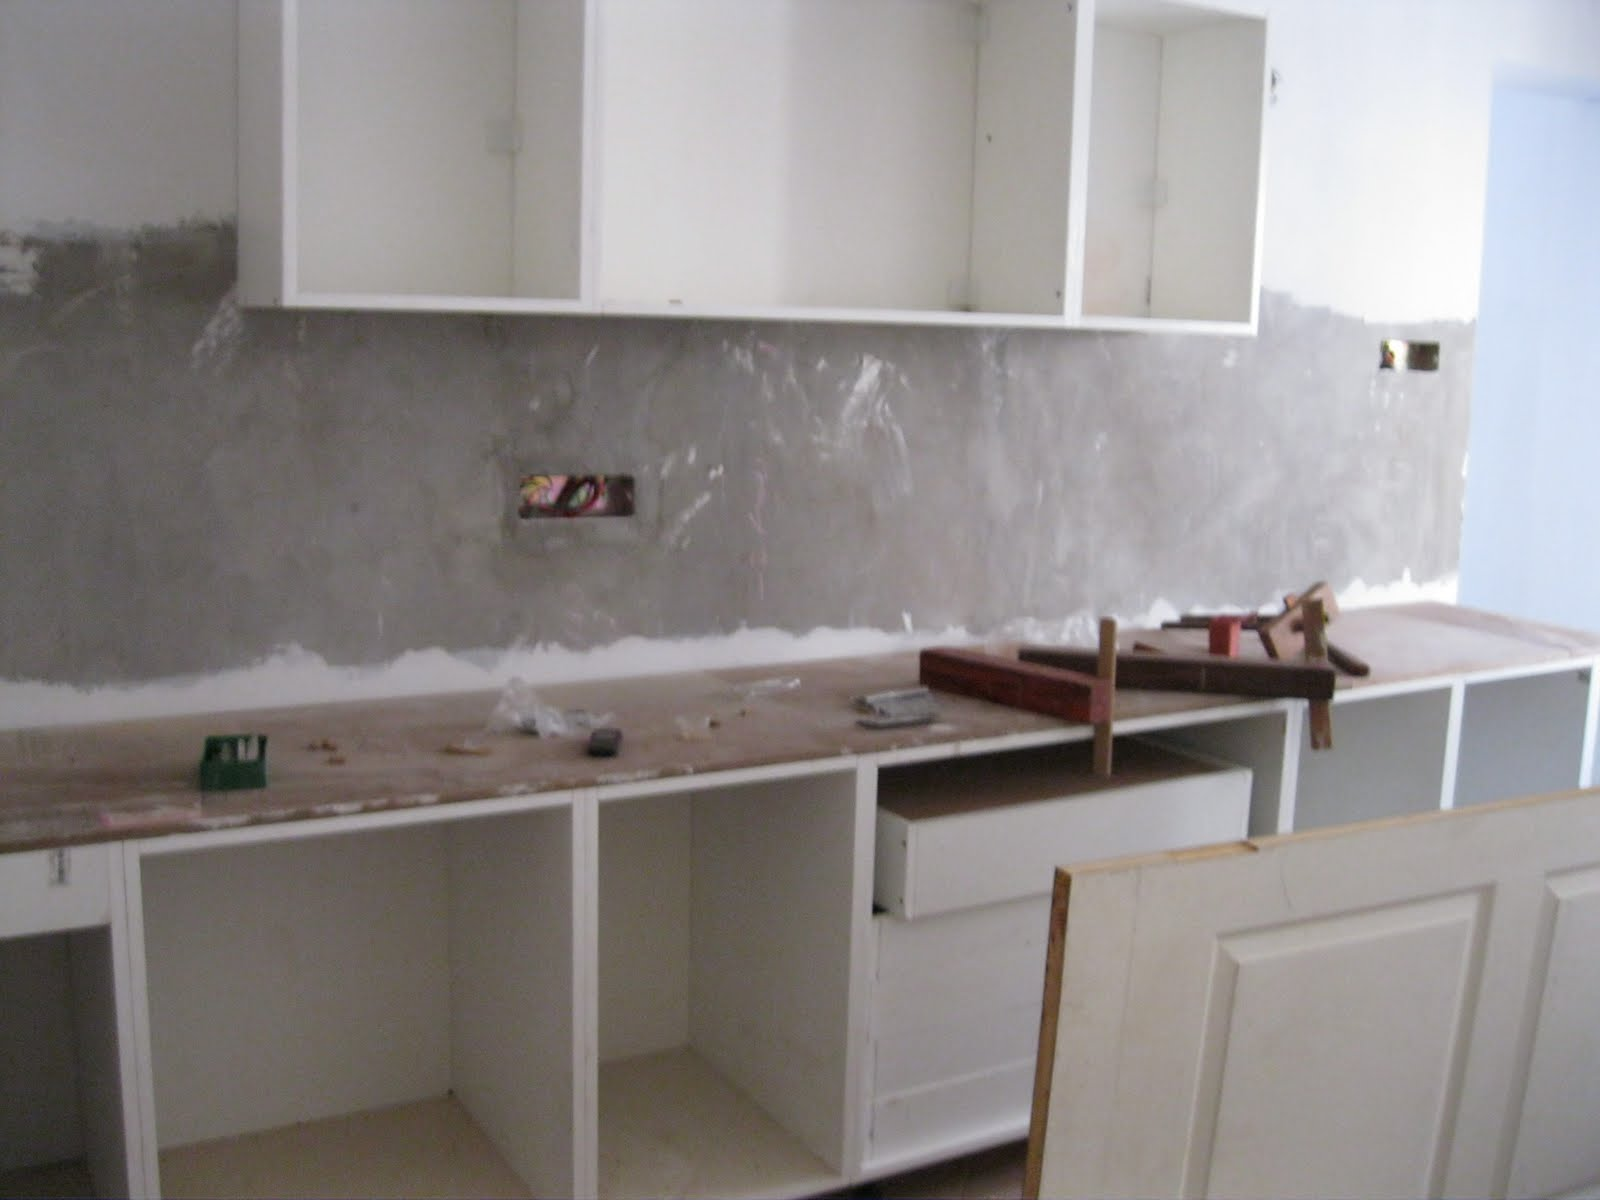 Superb img of  corner . The chimney and hob will come after the overhead cabinets with #5A4F46 color and 1600x1200 pixels